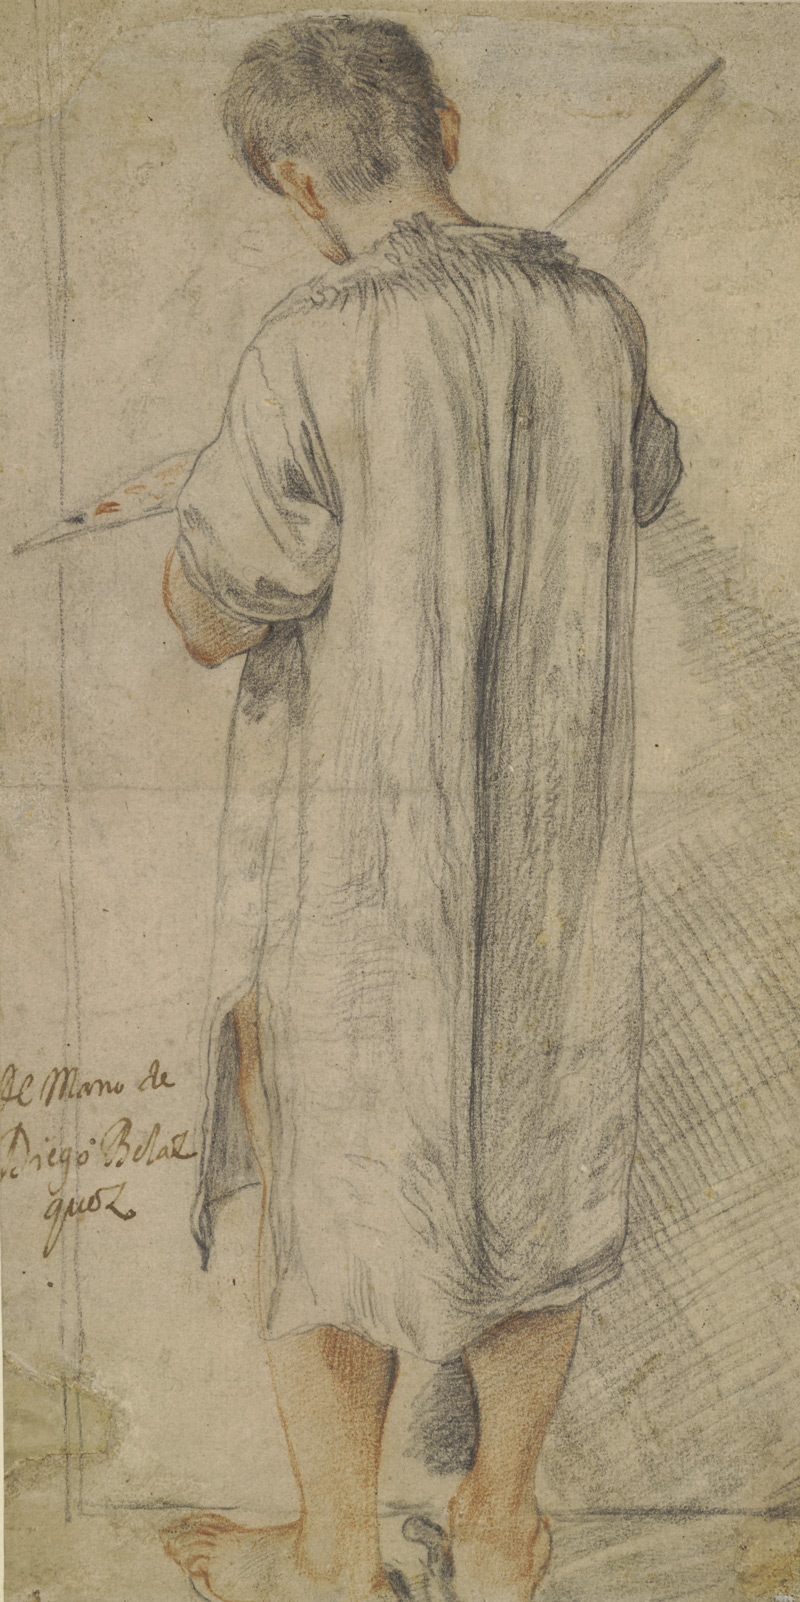 Attributed to Annibale Carracci, A young painter, seen from behind; whole-length standing, holding a palette and brush, wearing a smock, c. 1575-1609, Black and red chalk, 37.8 x 18.8 cm © Trustees of the British Museum